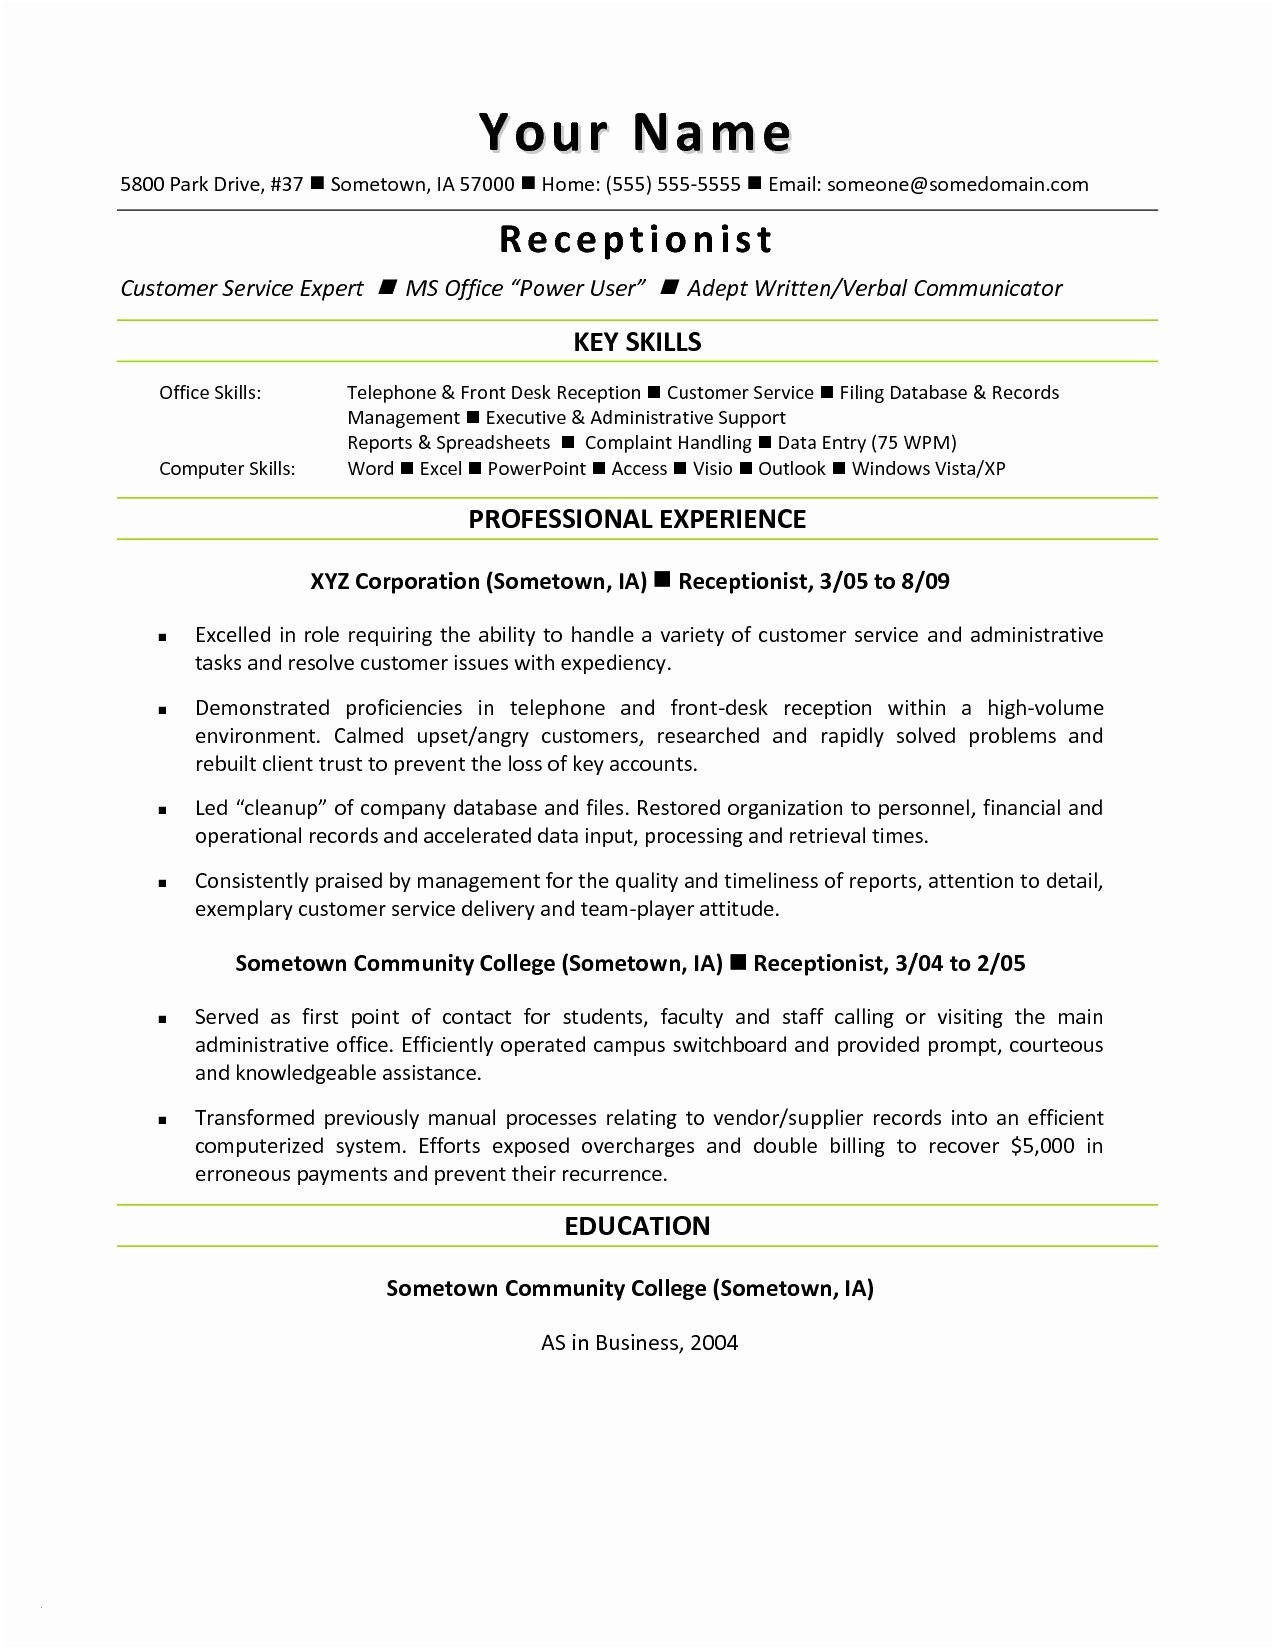 Resume Template Receptionist - Consulting Resume Template Awesome Resume Mail format Sample Fresh